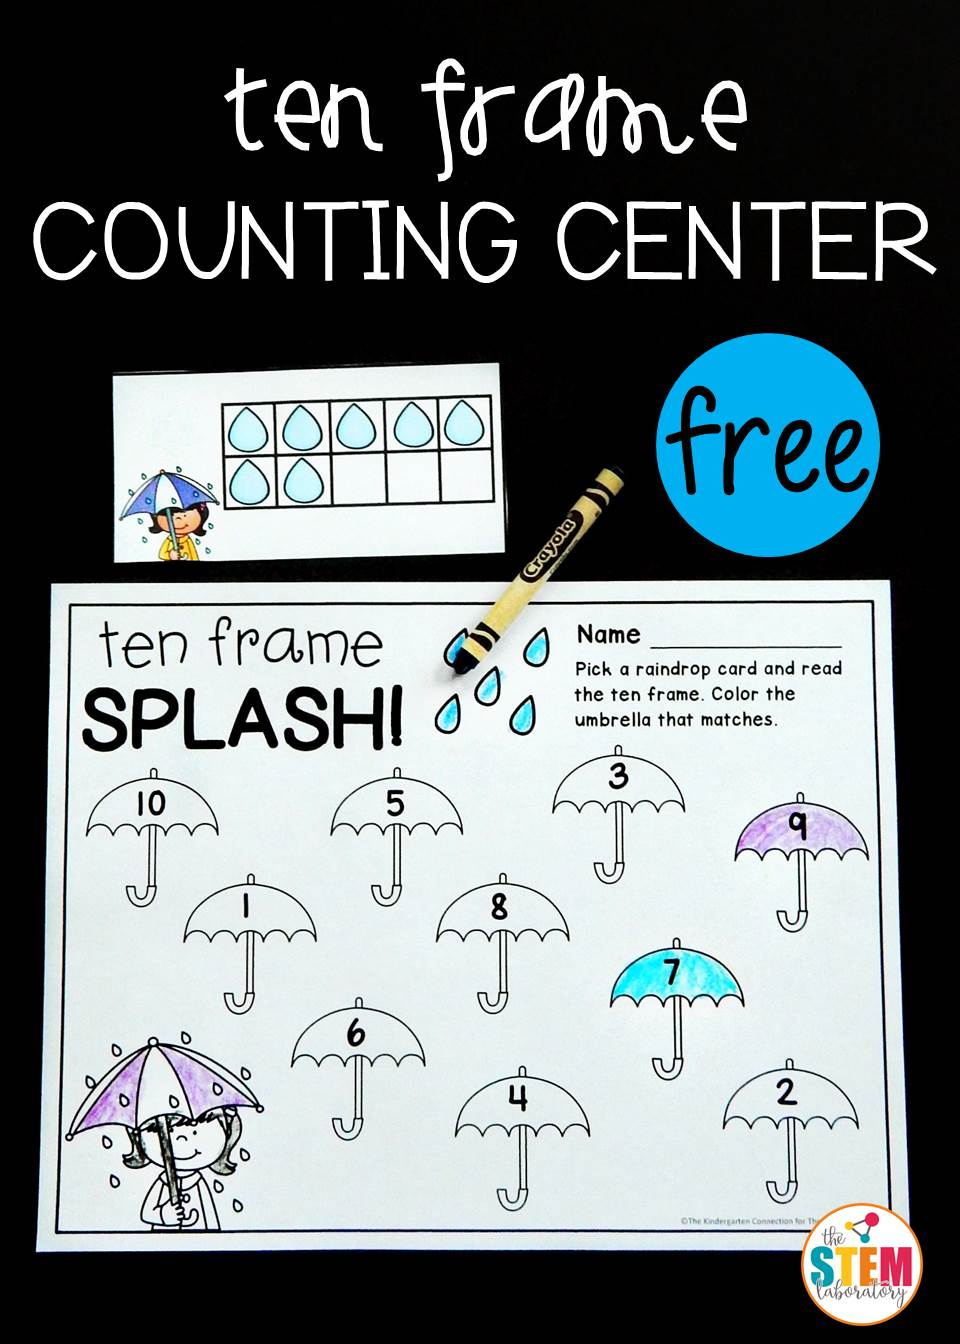 Raindrop Ten Frame Counting Center